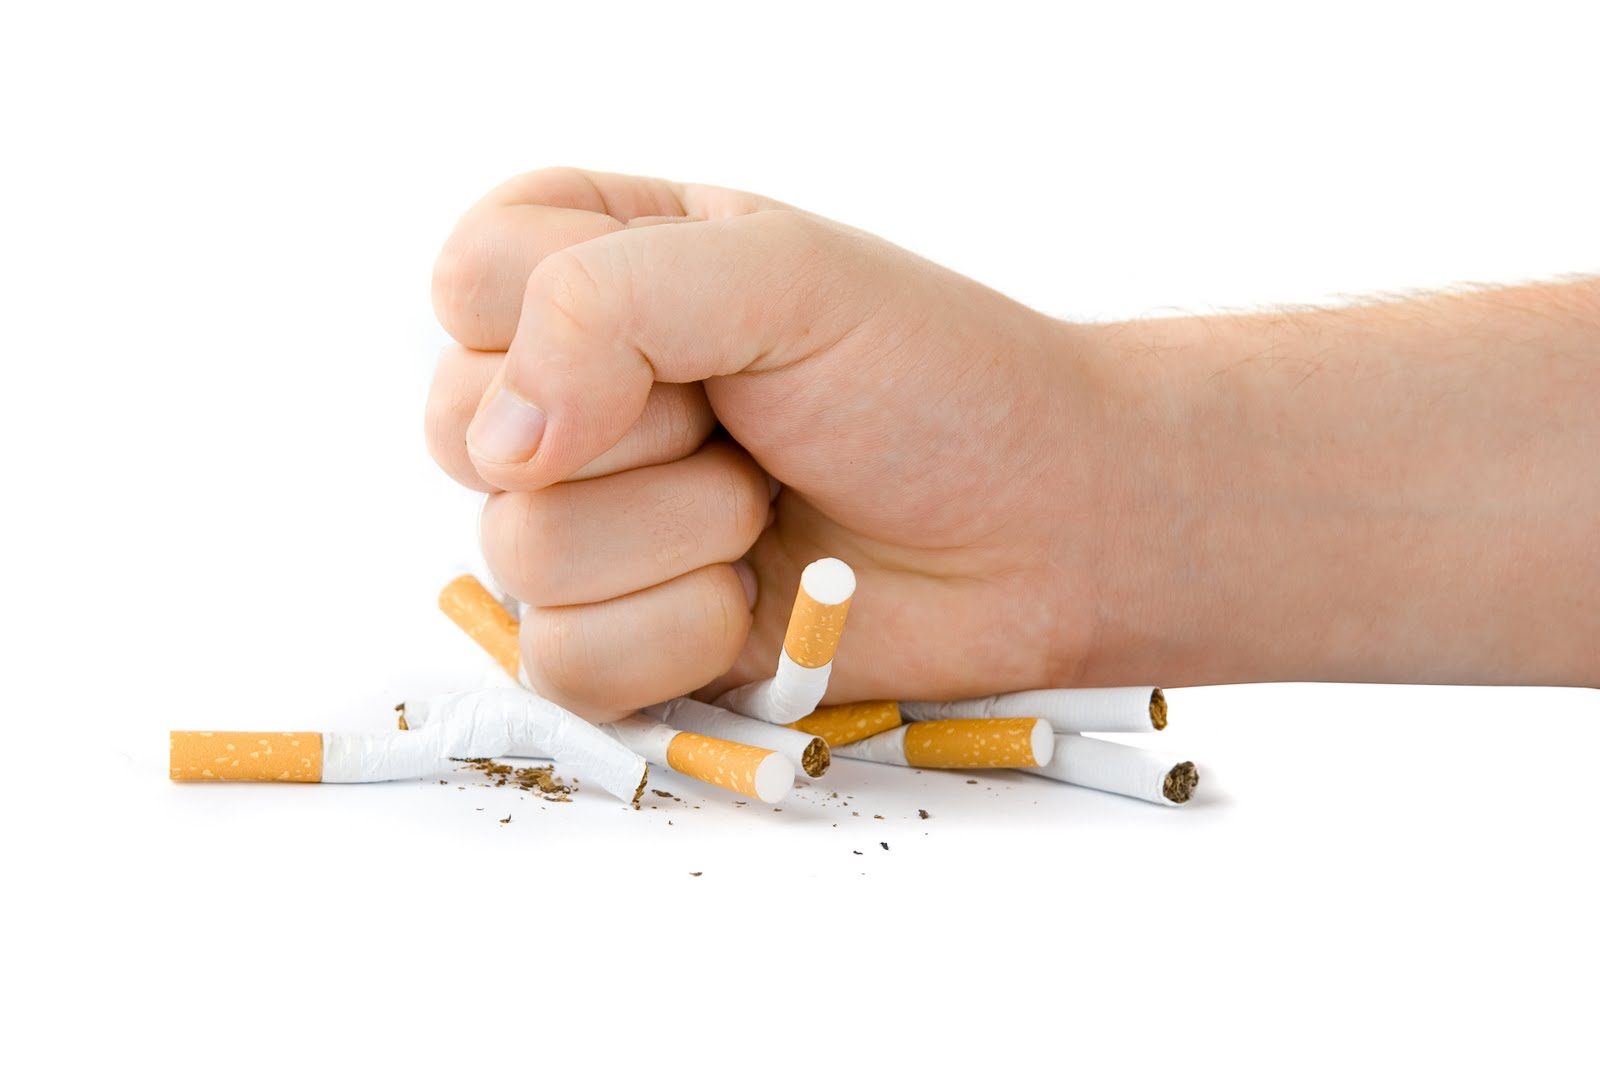 stop-smoking-image